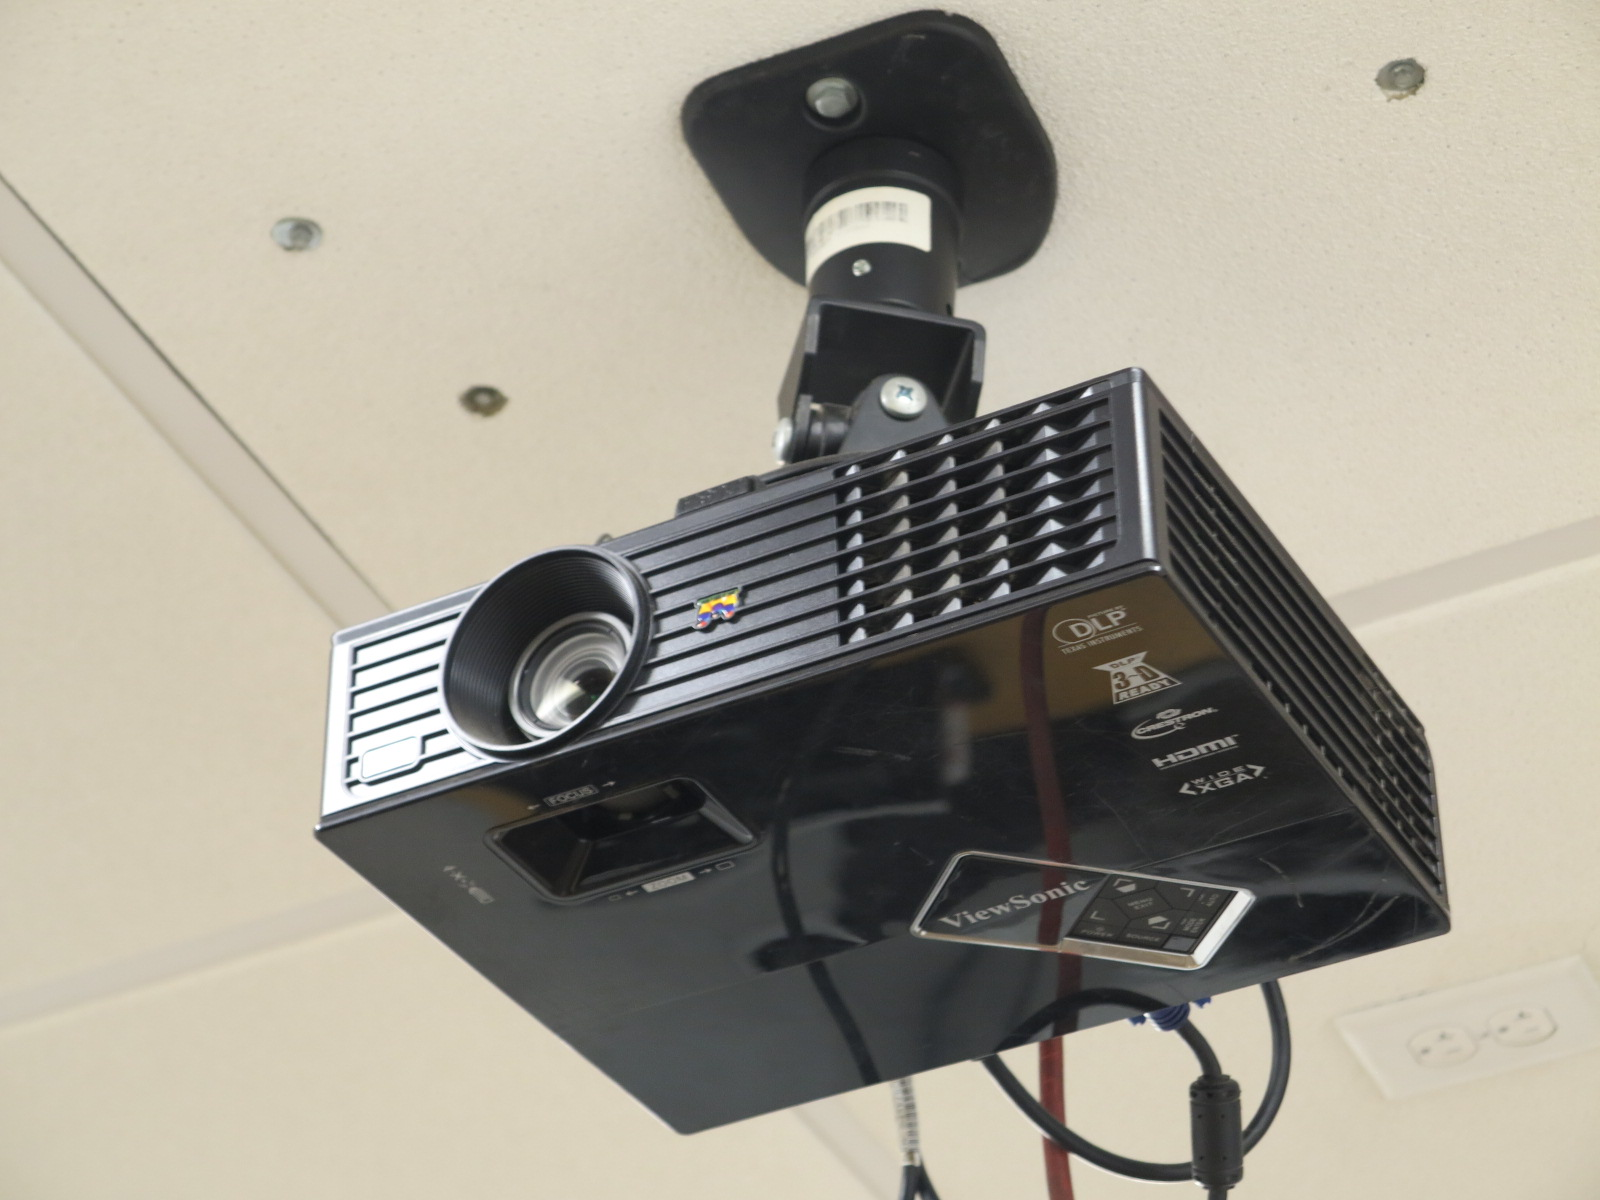 Lot 40A - VIEWSONIC VIDEO PROJECTOR W/ 12' WIDE SCREEN